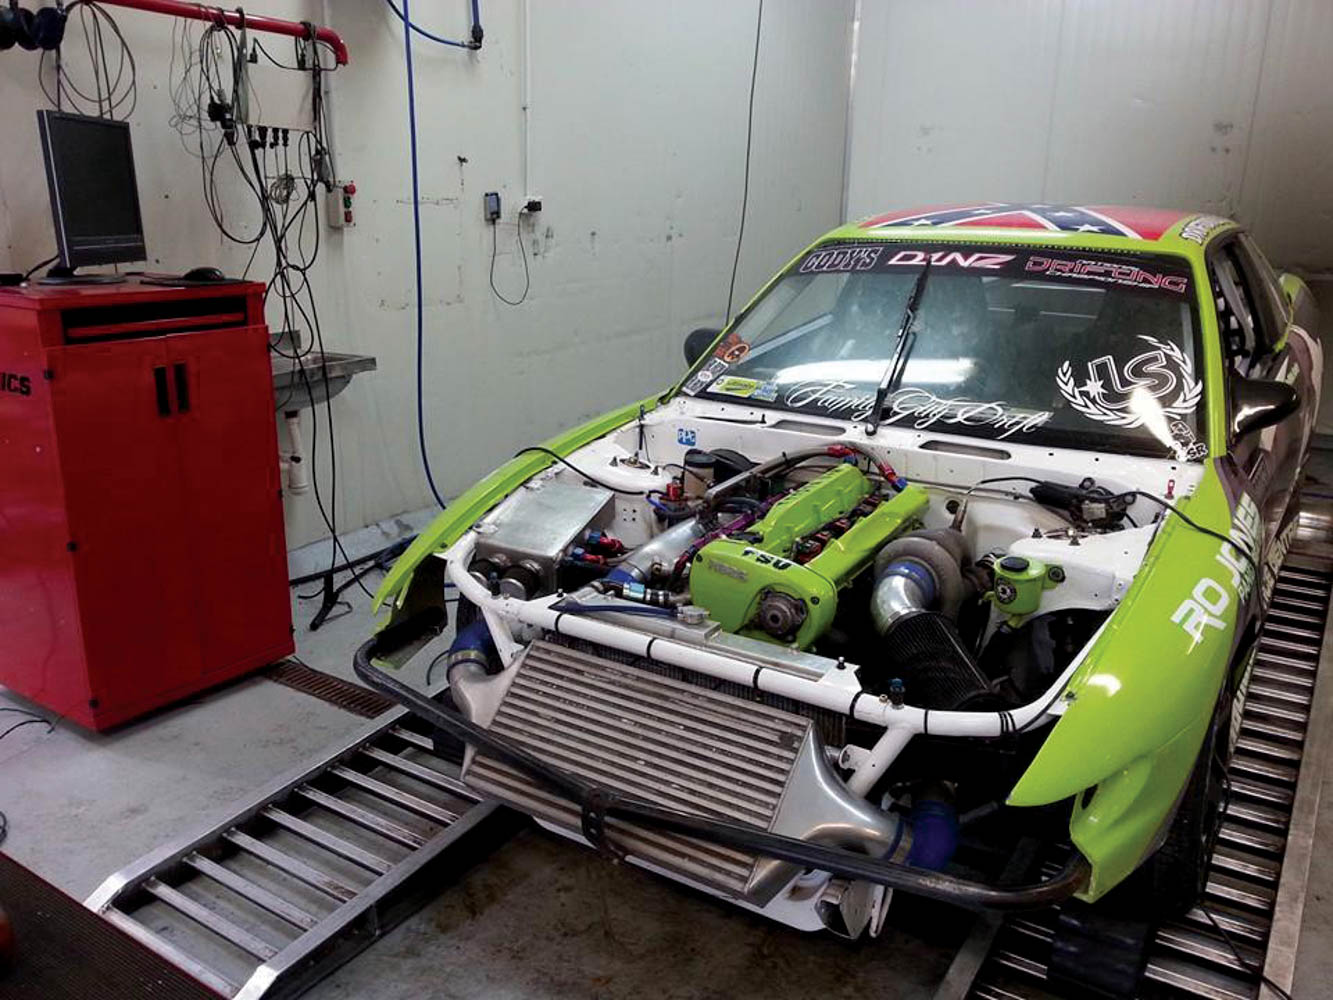 Dyno tuning: find out how you can spend your money wisely